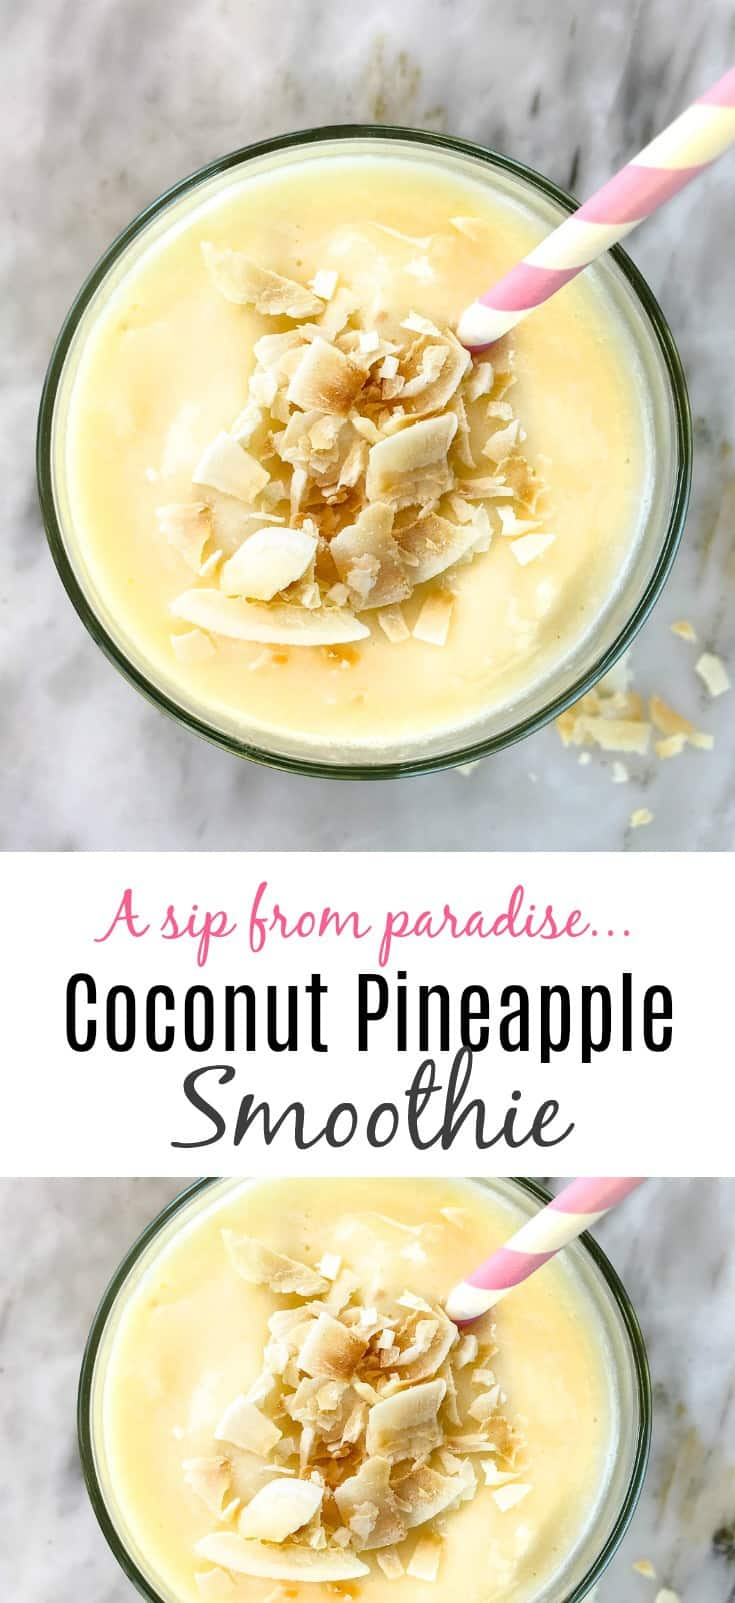 Coconut Pineapple Smoothie: Every Sip is Like Taking a Vacation | 31Daily.com